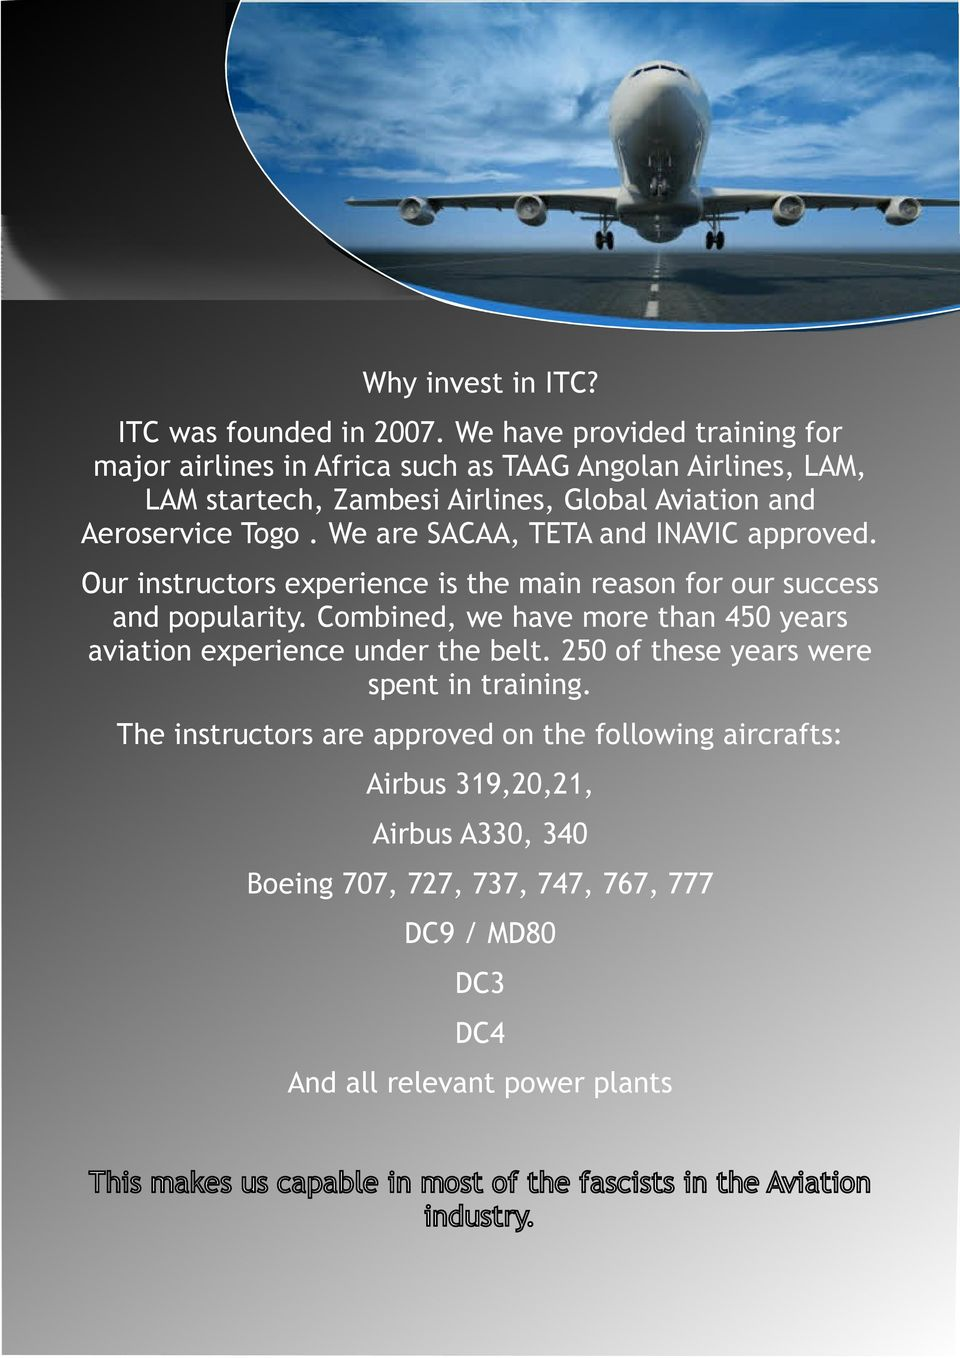 We are SACAA, TETA and INAVIC approved. Our instructors experience is the main reason for our success and popularity.